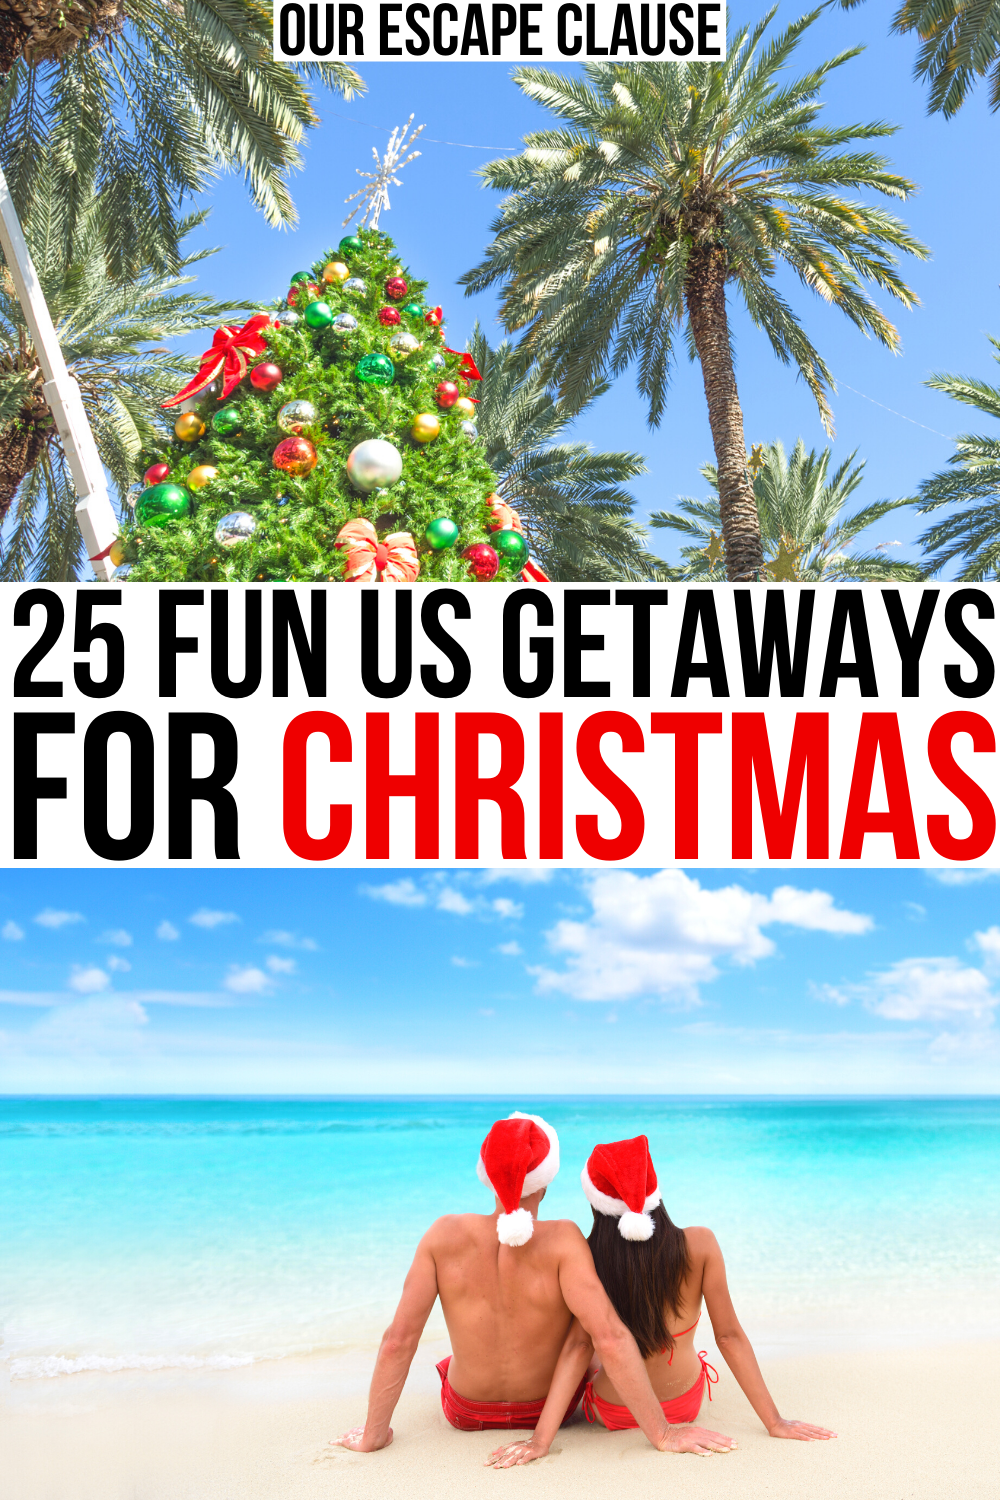 25 Best Christmas Vacations In The Usa Our Escape Clause In 2020 Winter Travel Destinations Travel Usa Best Christmas Vacations